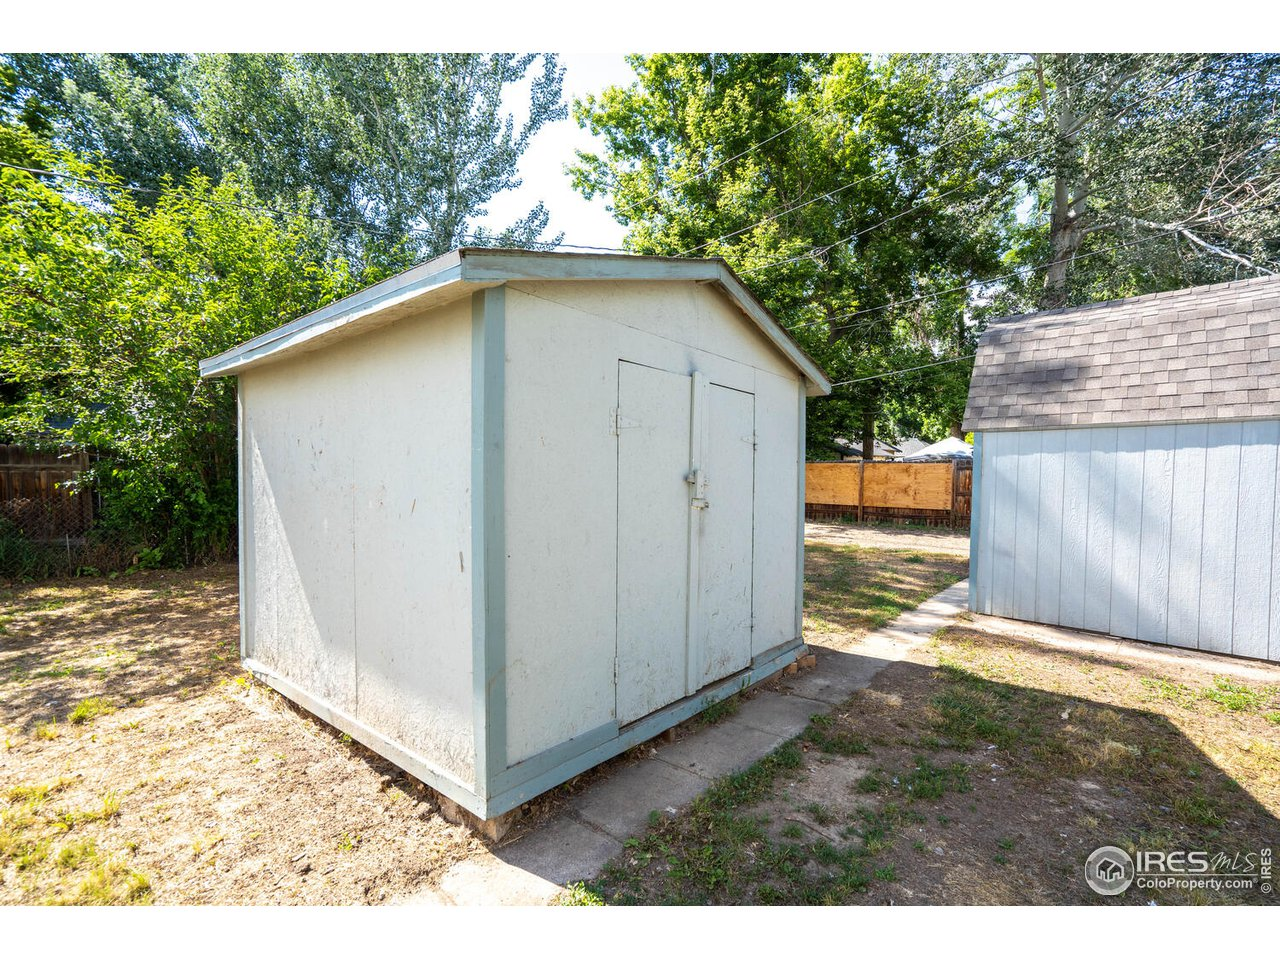 Large shed with loft storage and concrete flooring.